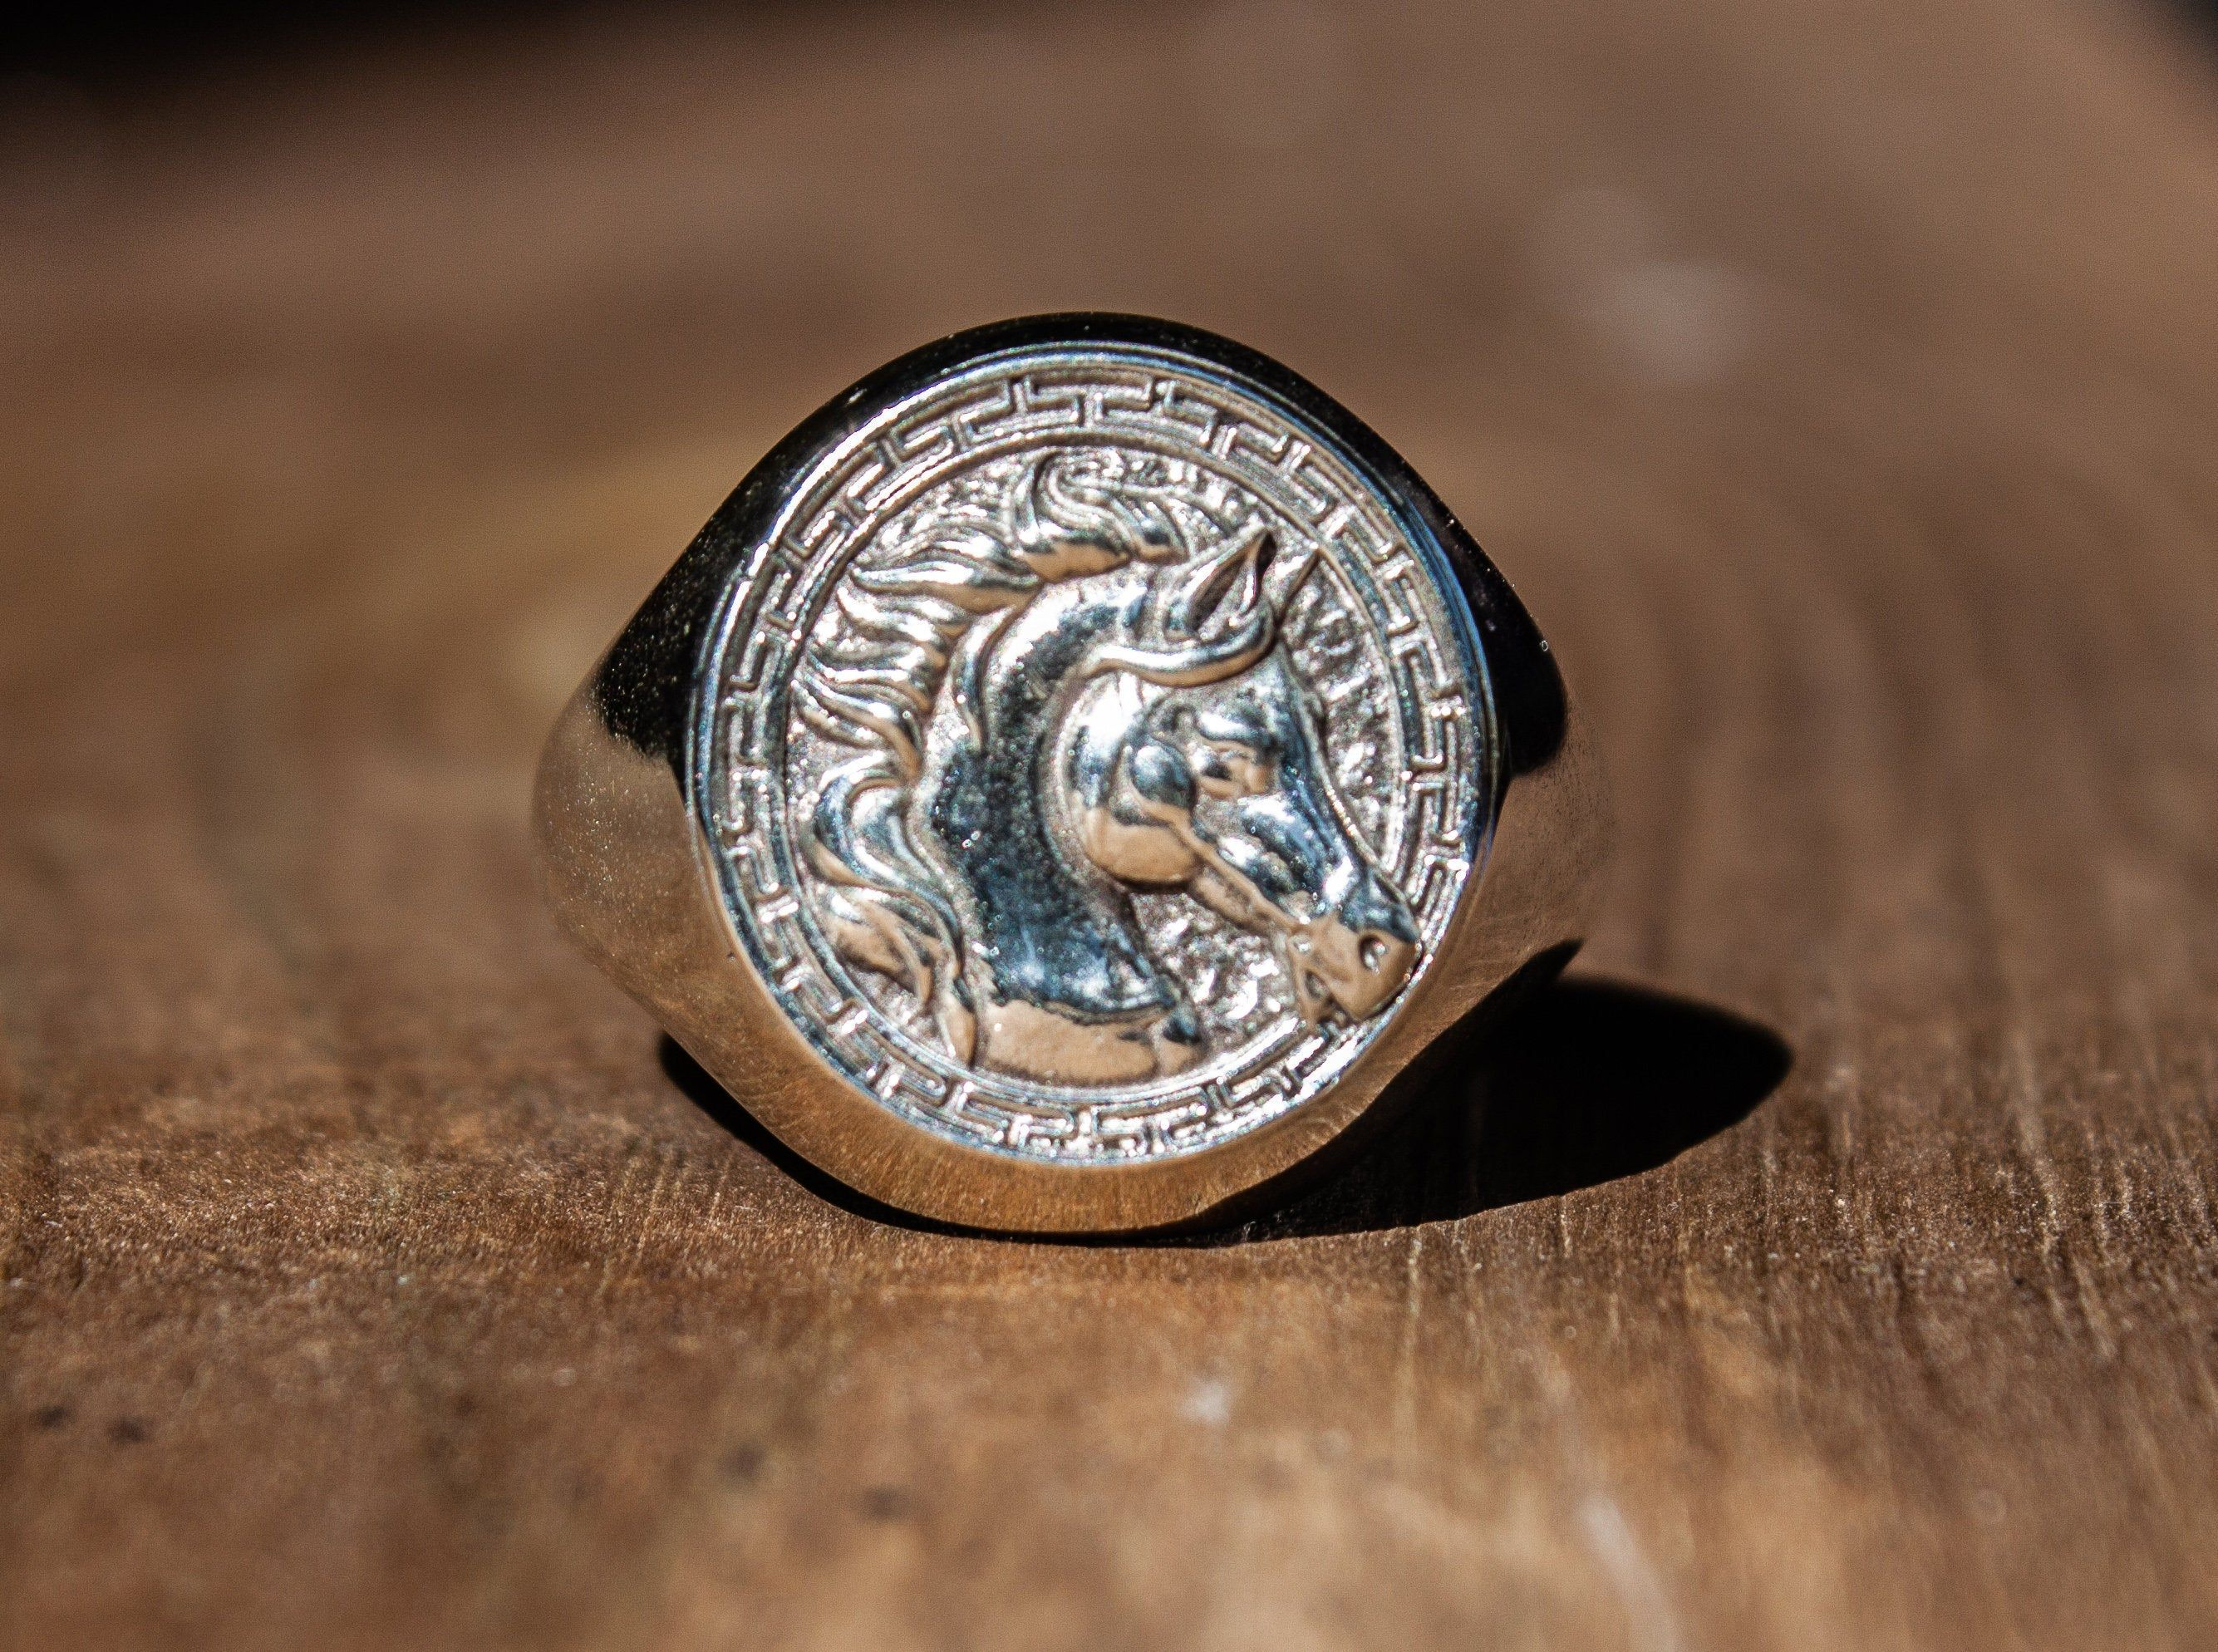 animal ring made of pure Sterling Silver FREE EXPRESS SHIPPING! Silver horse ring unisex equestrian ring